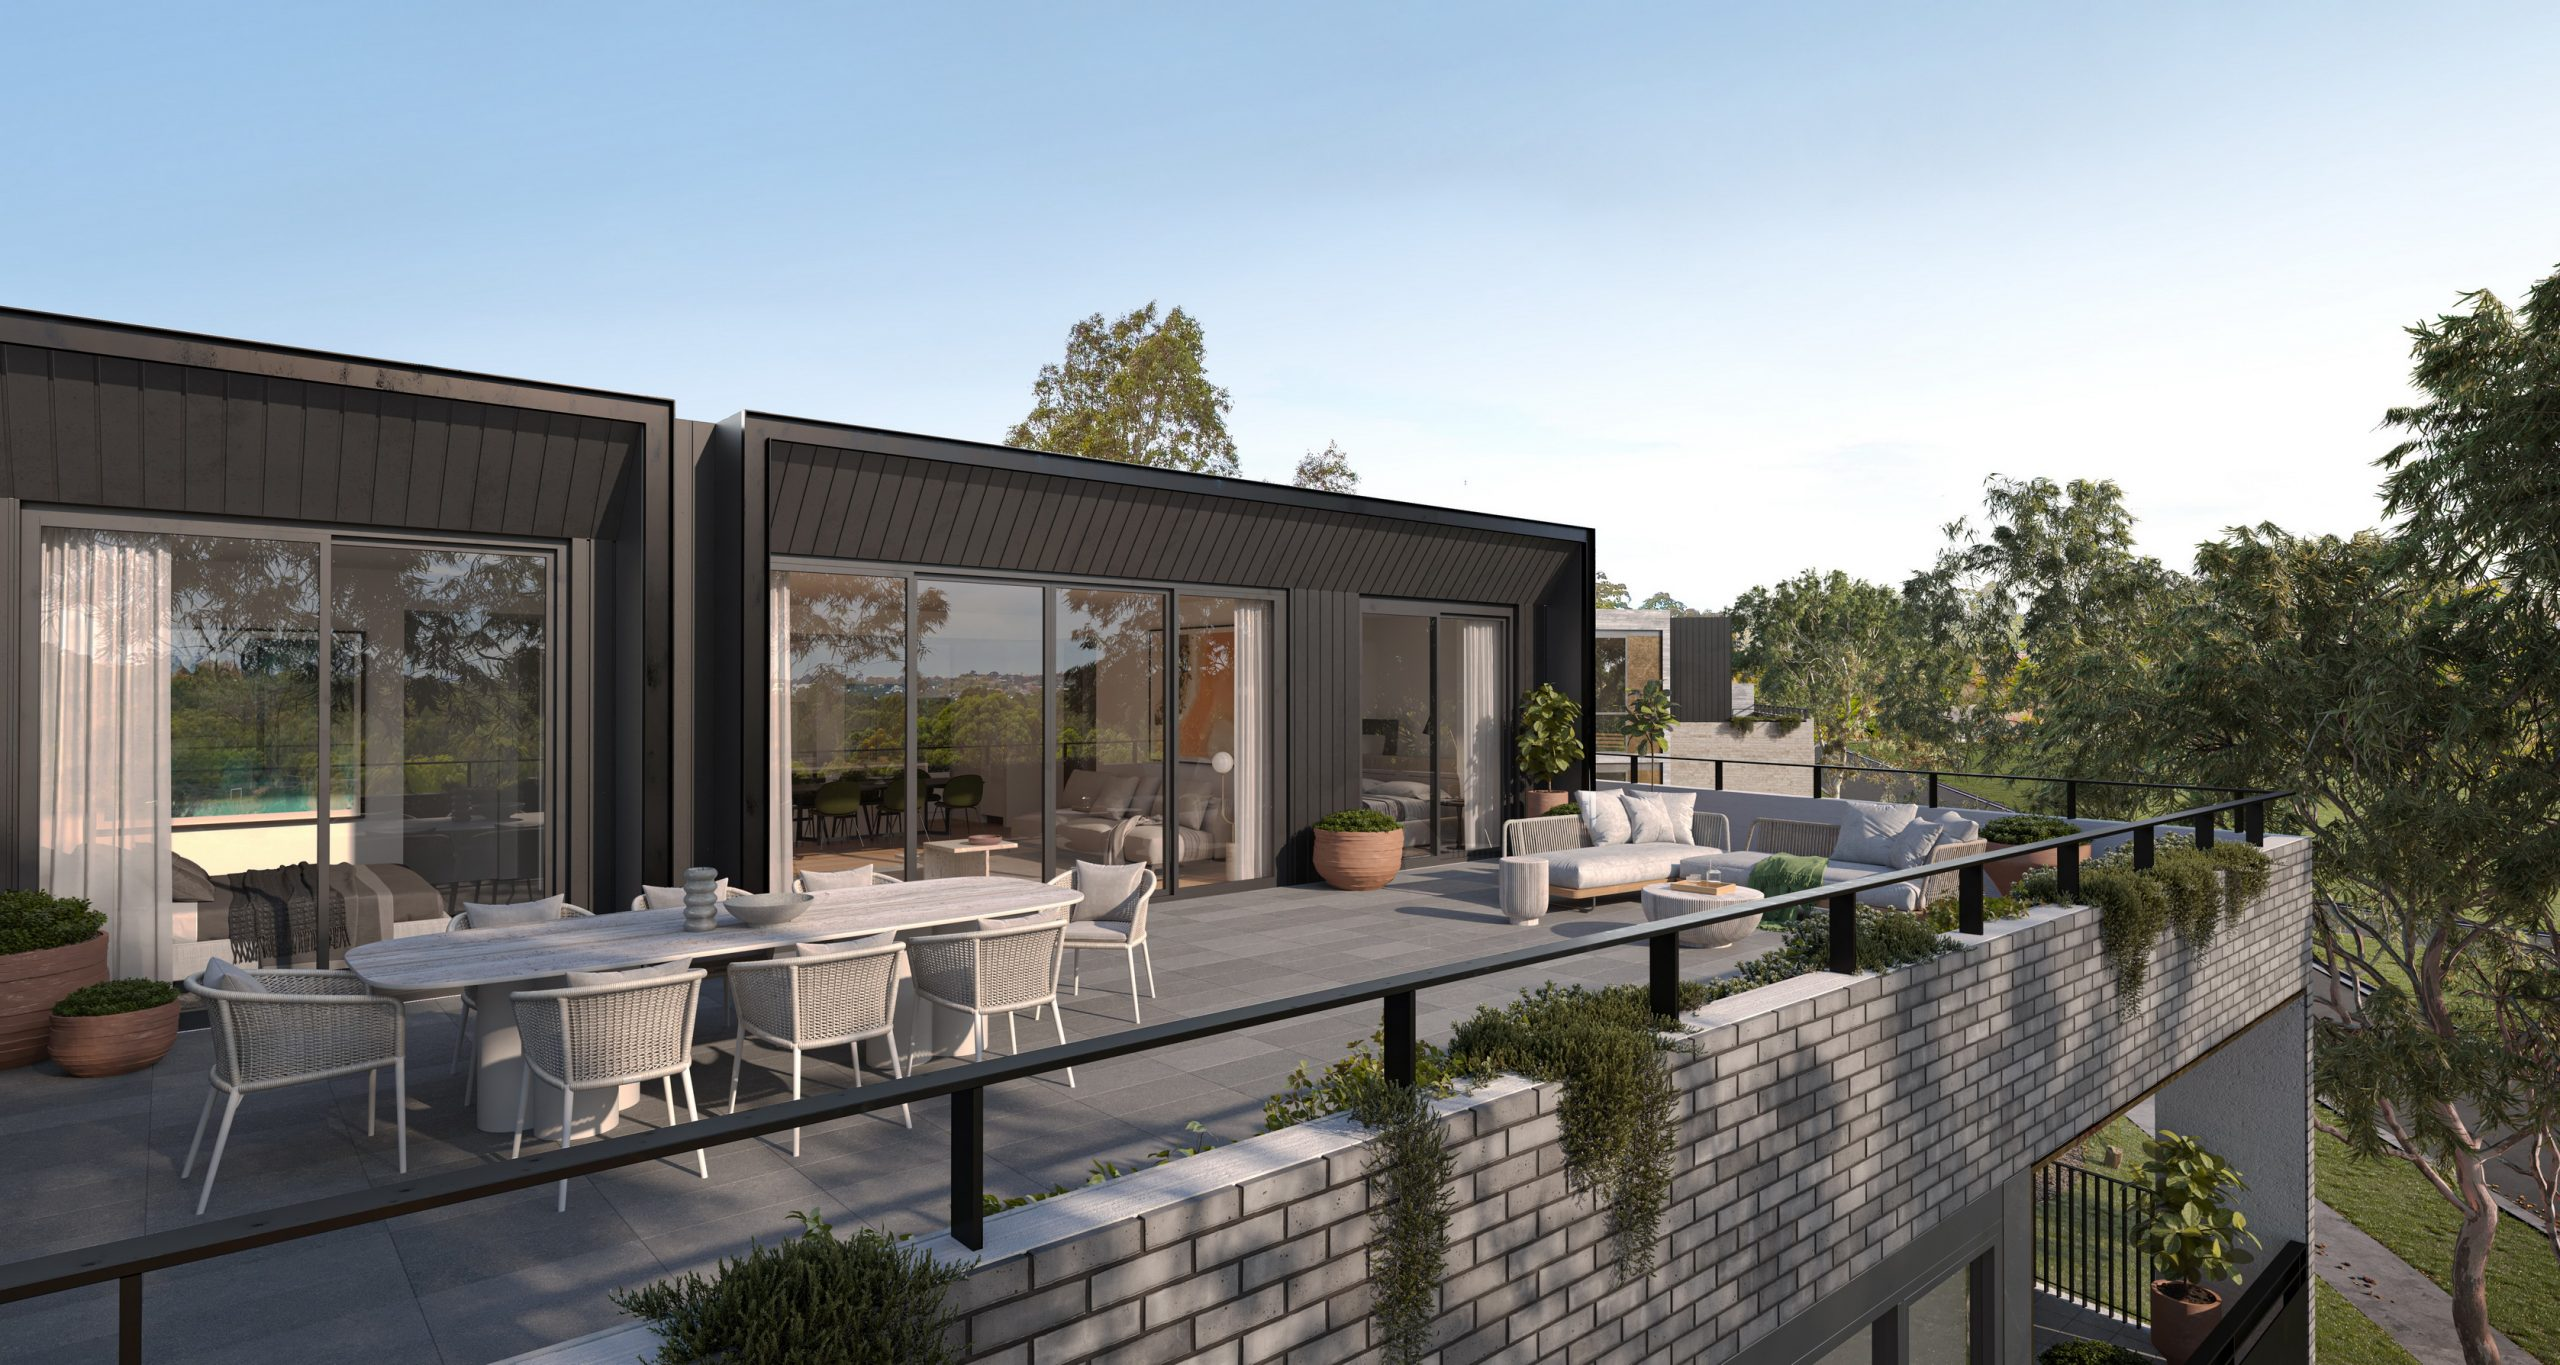 fkd-studio-render-architecture-image-the-grounds-interior-ivanhoe-residential-balcony-view-parklands